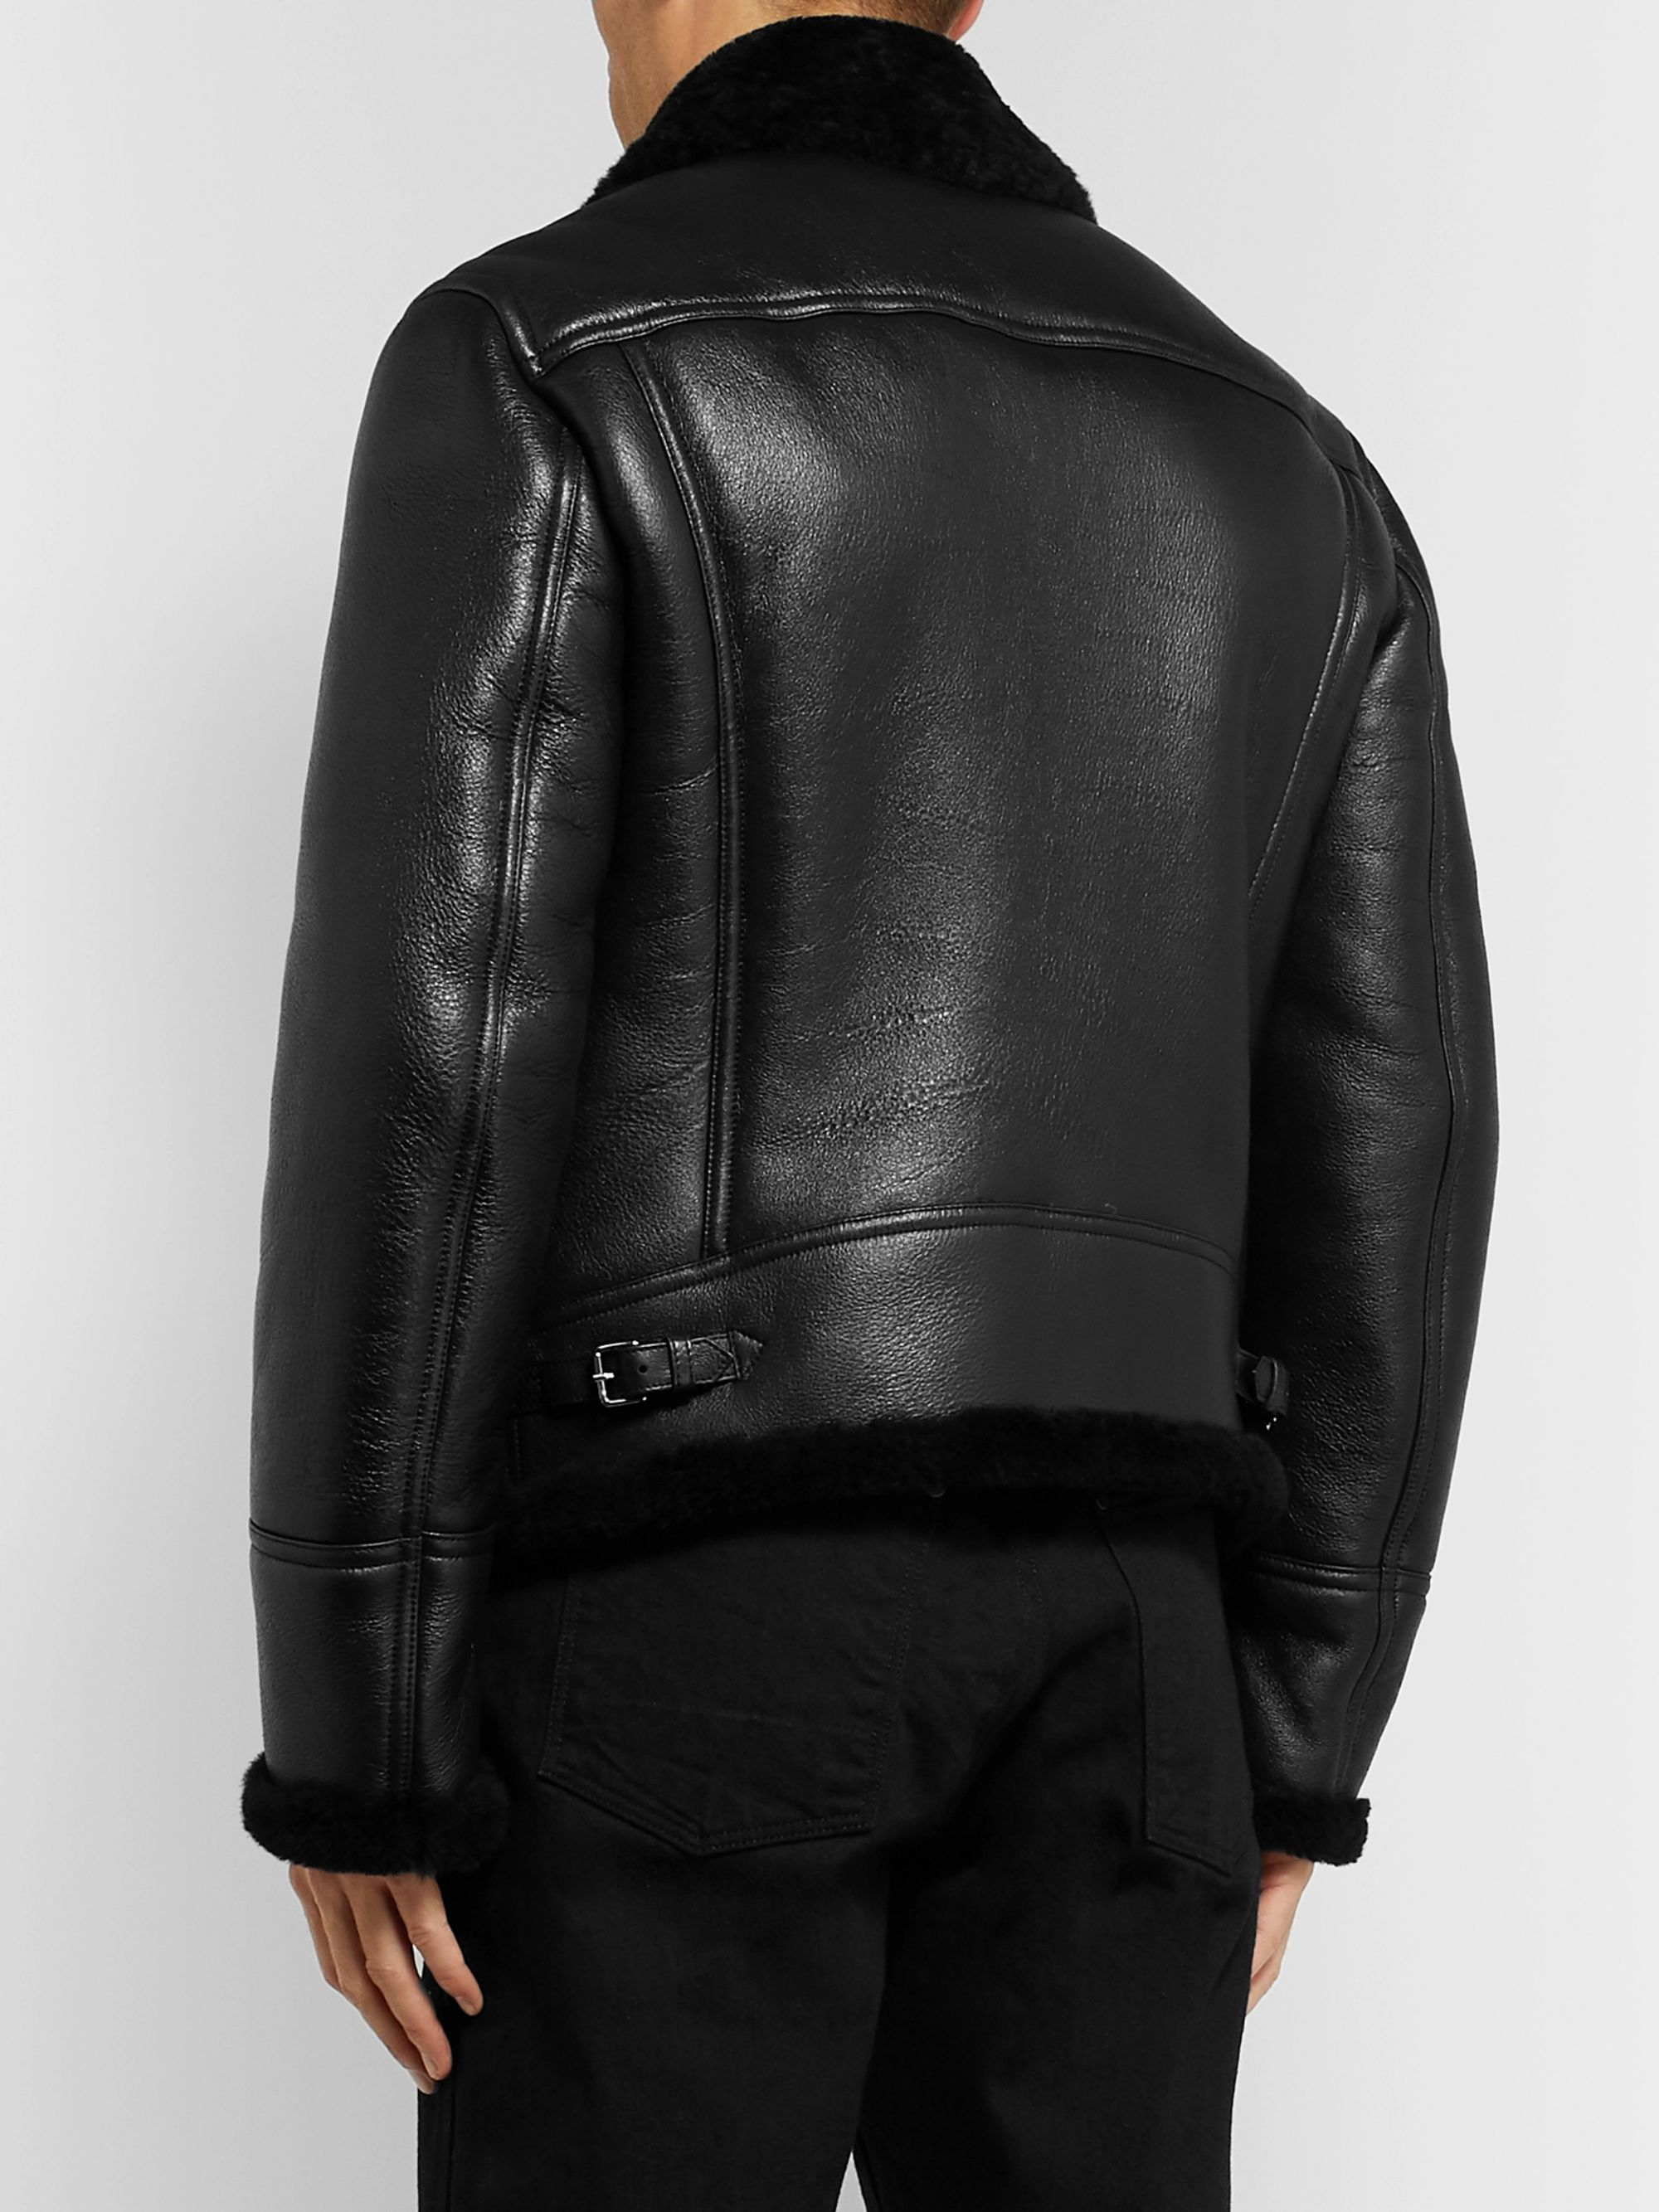 TOM FORD Shearling-Lined Leather Aviator Jacket